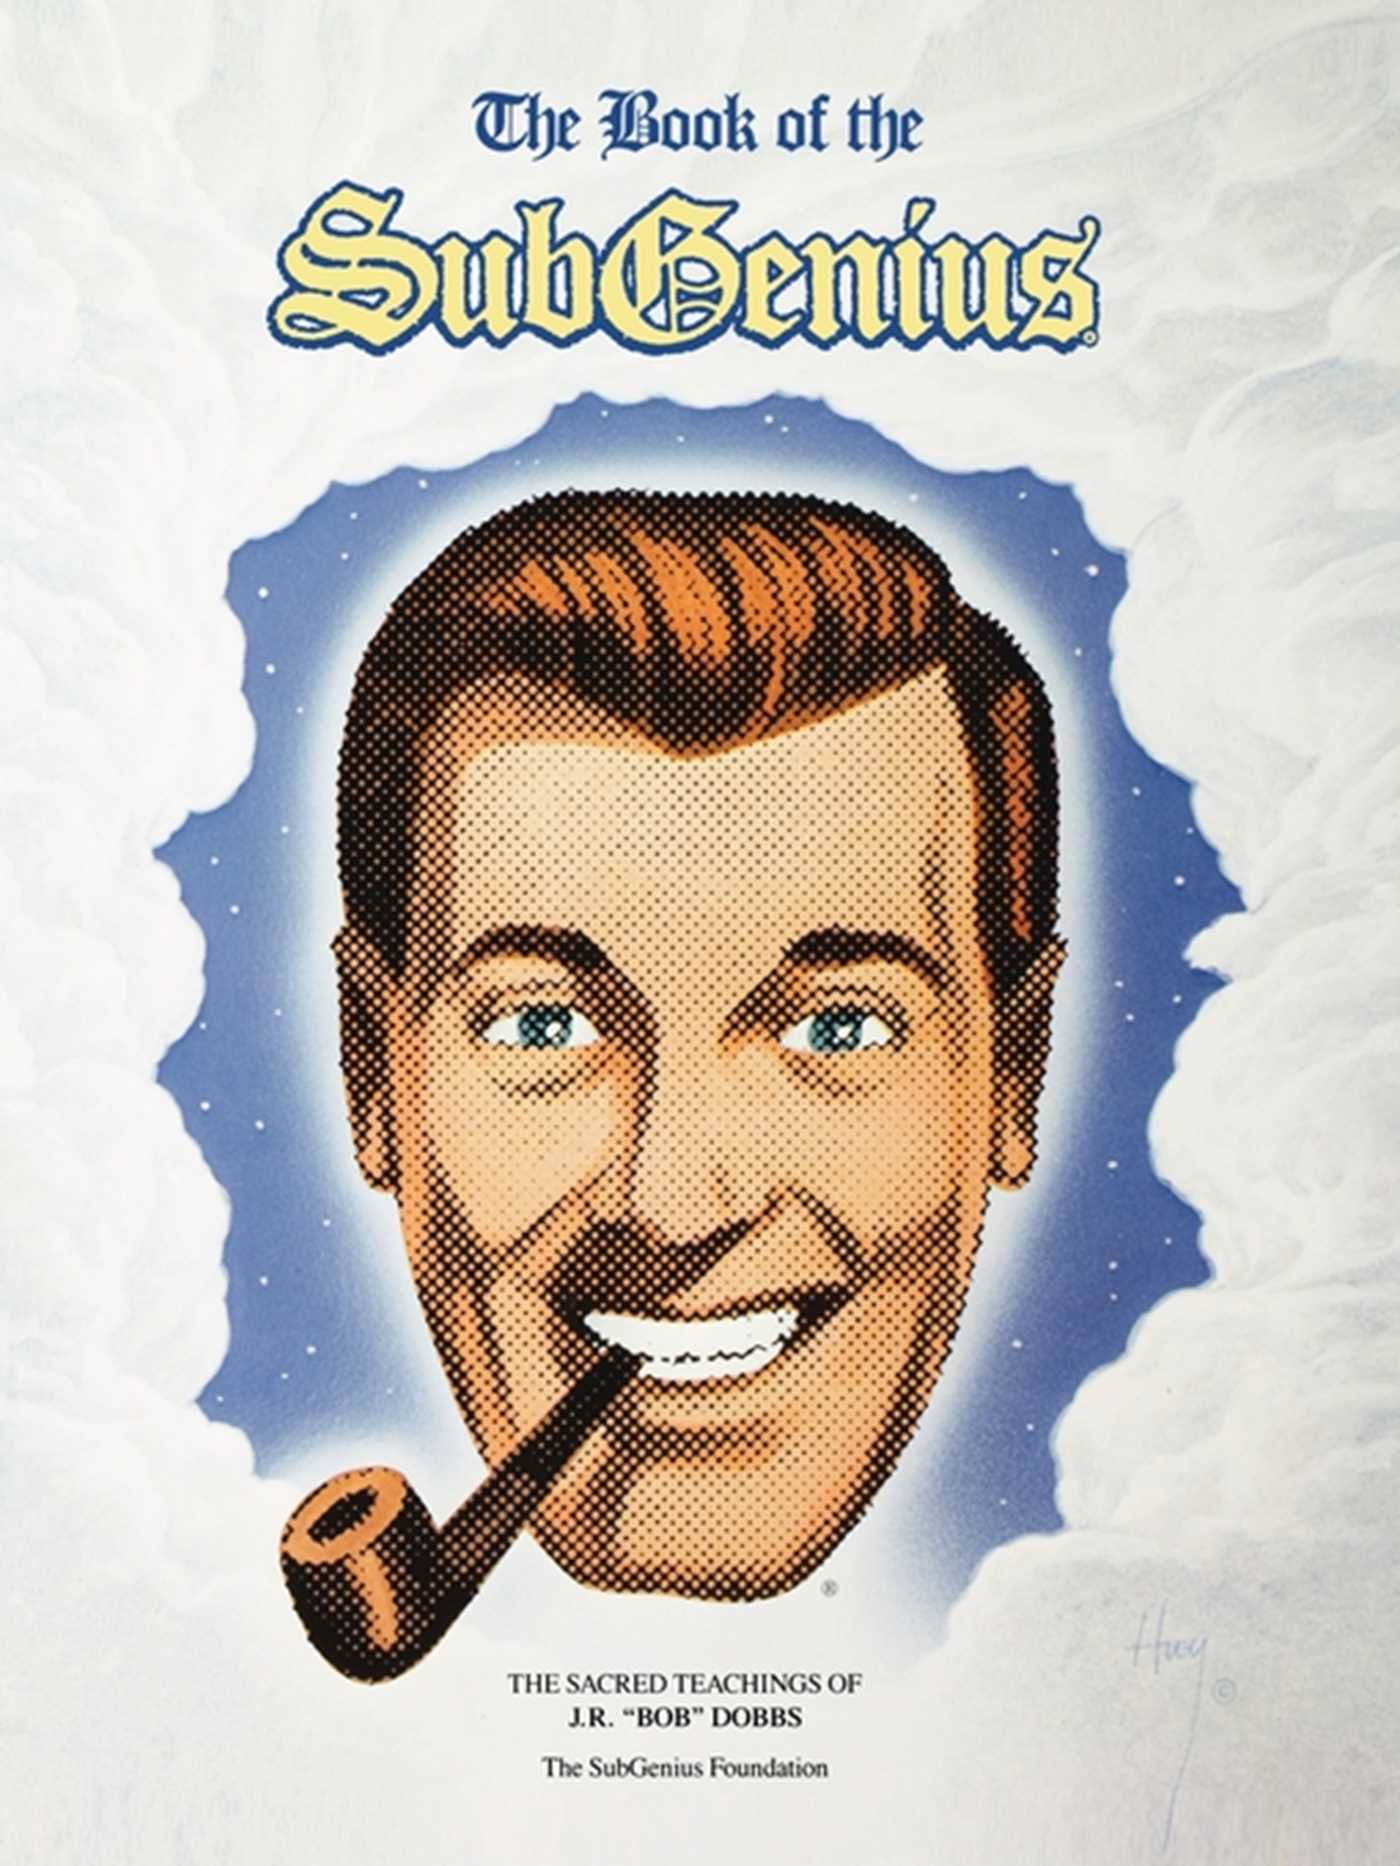 Book-of-the-subgenius-9781439188651_hr